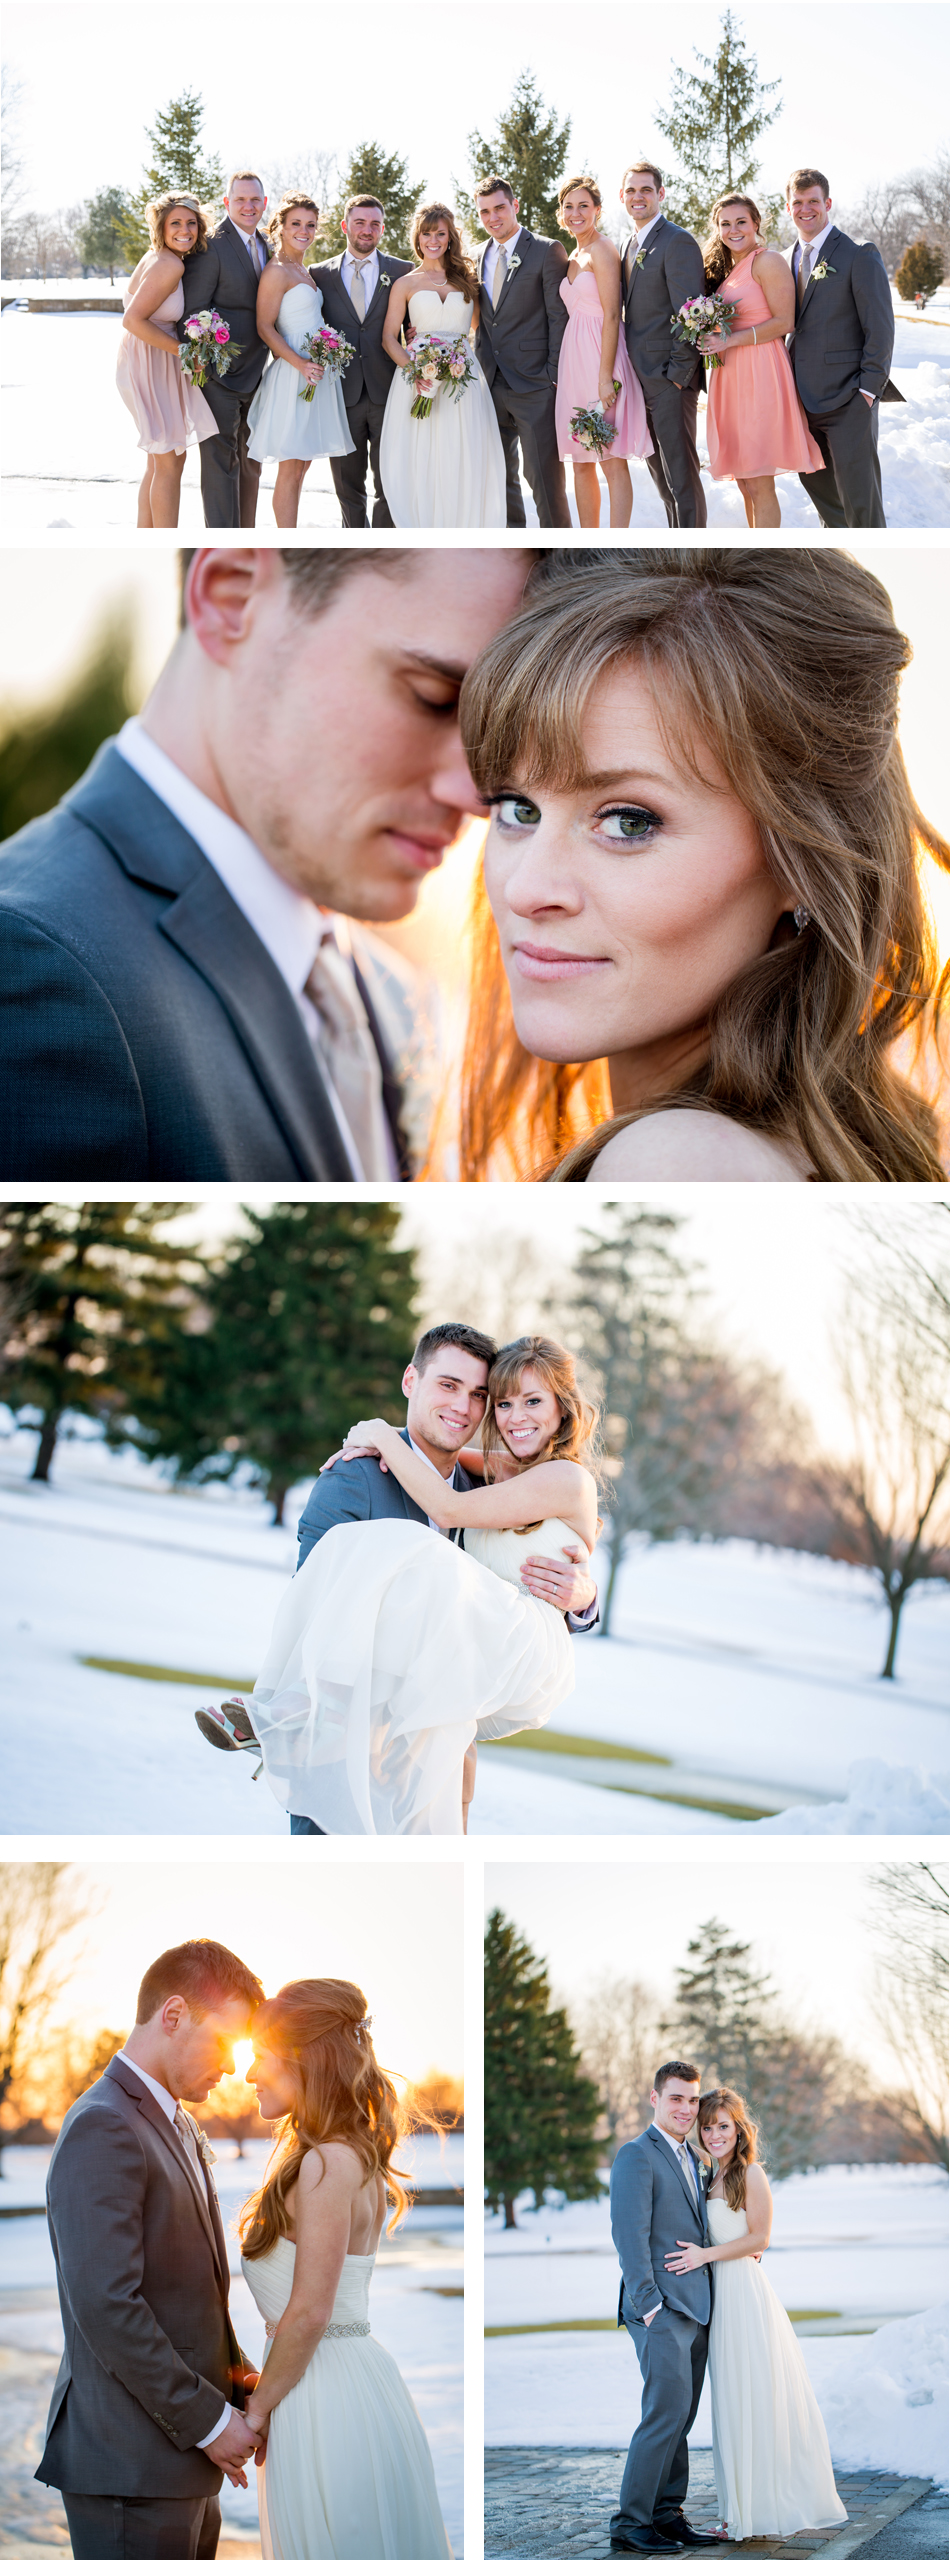 Woodhaven Country Club Wedding eMotion image and video